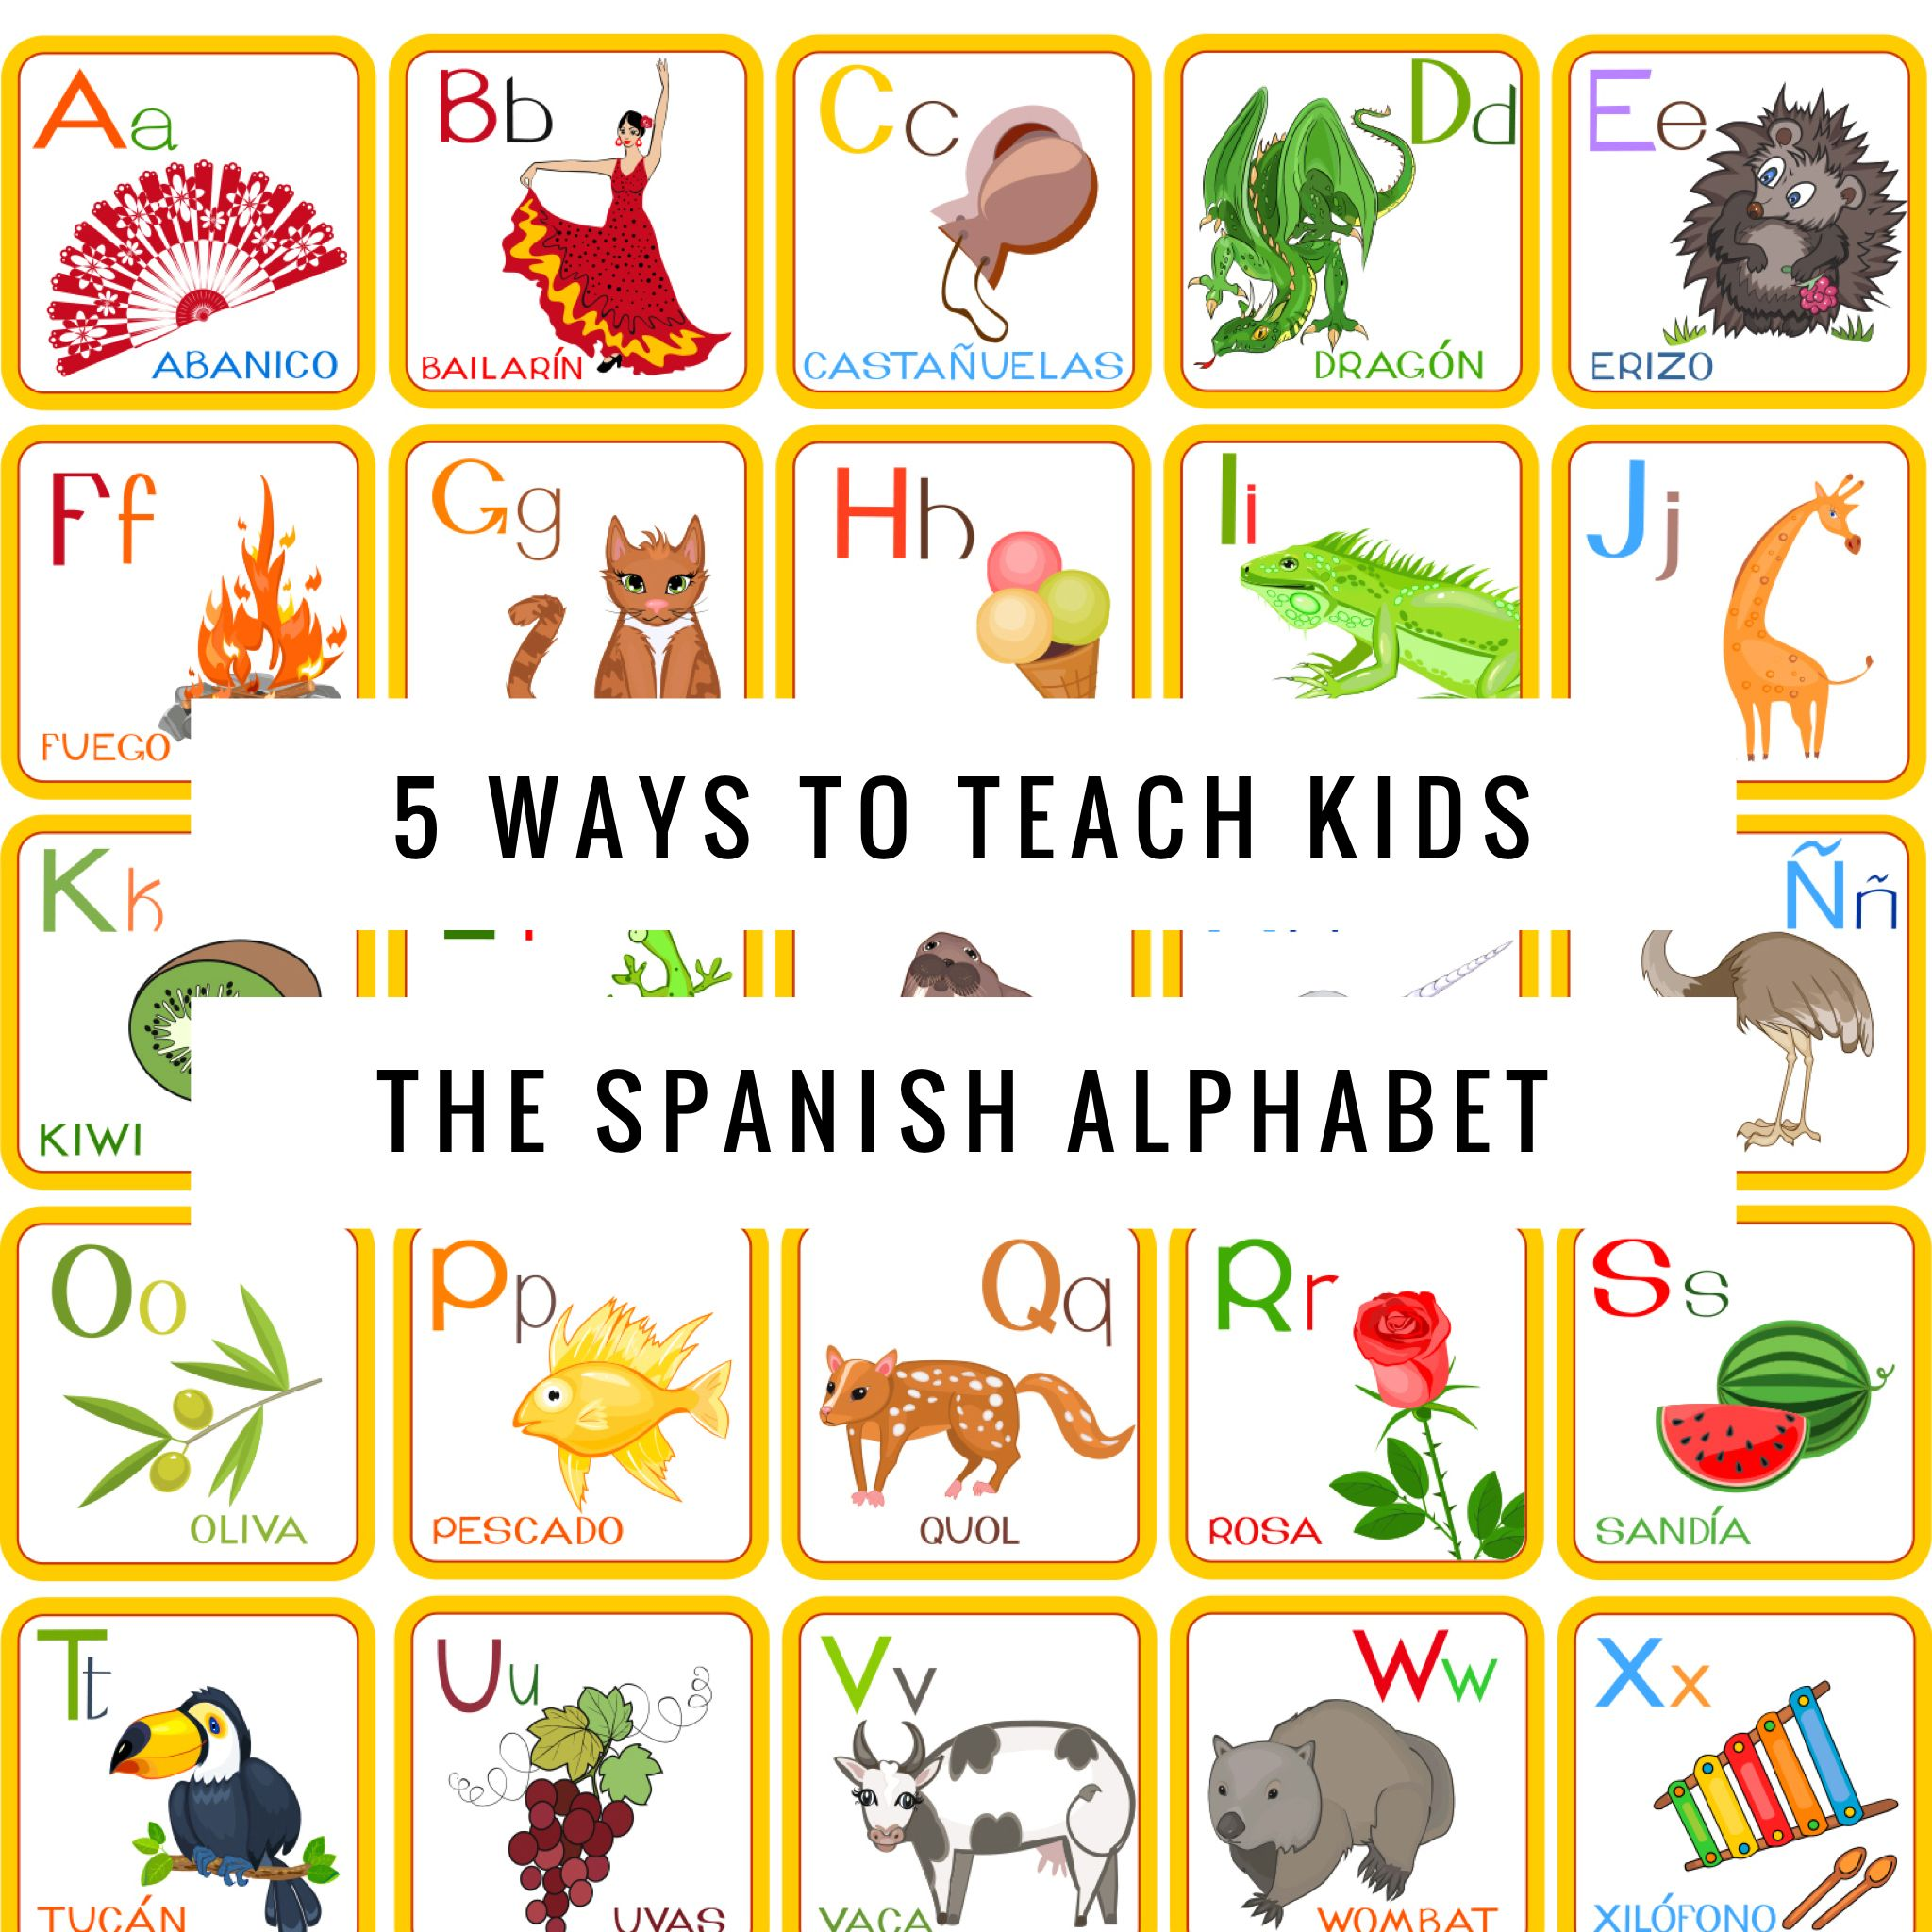 Spanish Alphabet 5 Ways To Teach Kids With Images